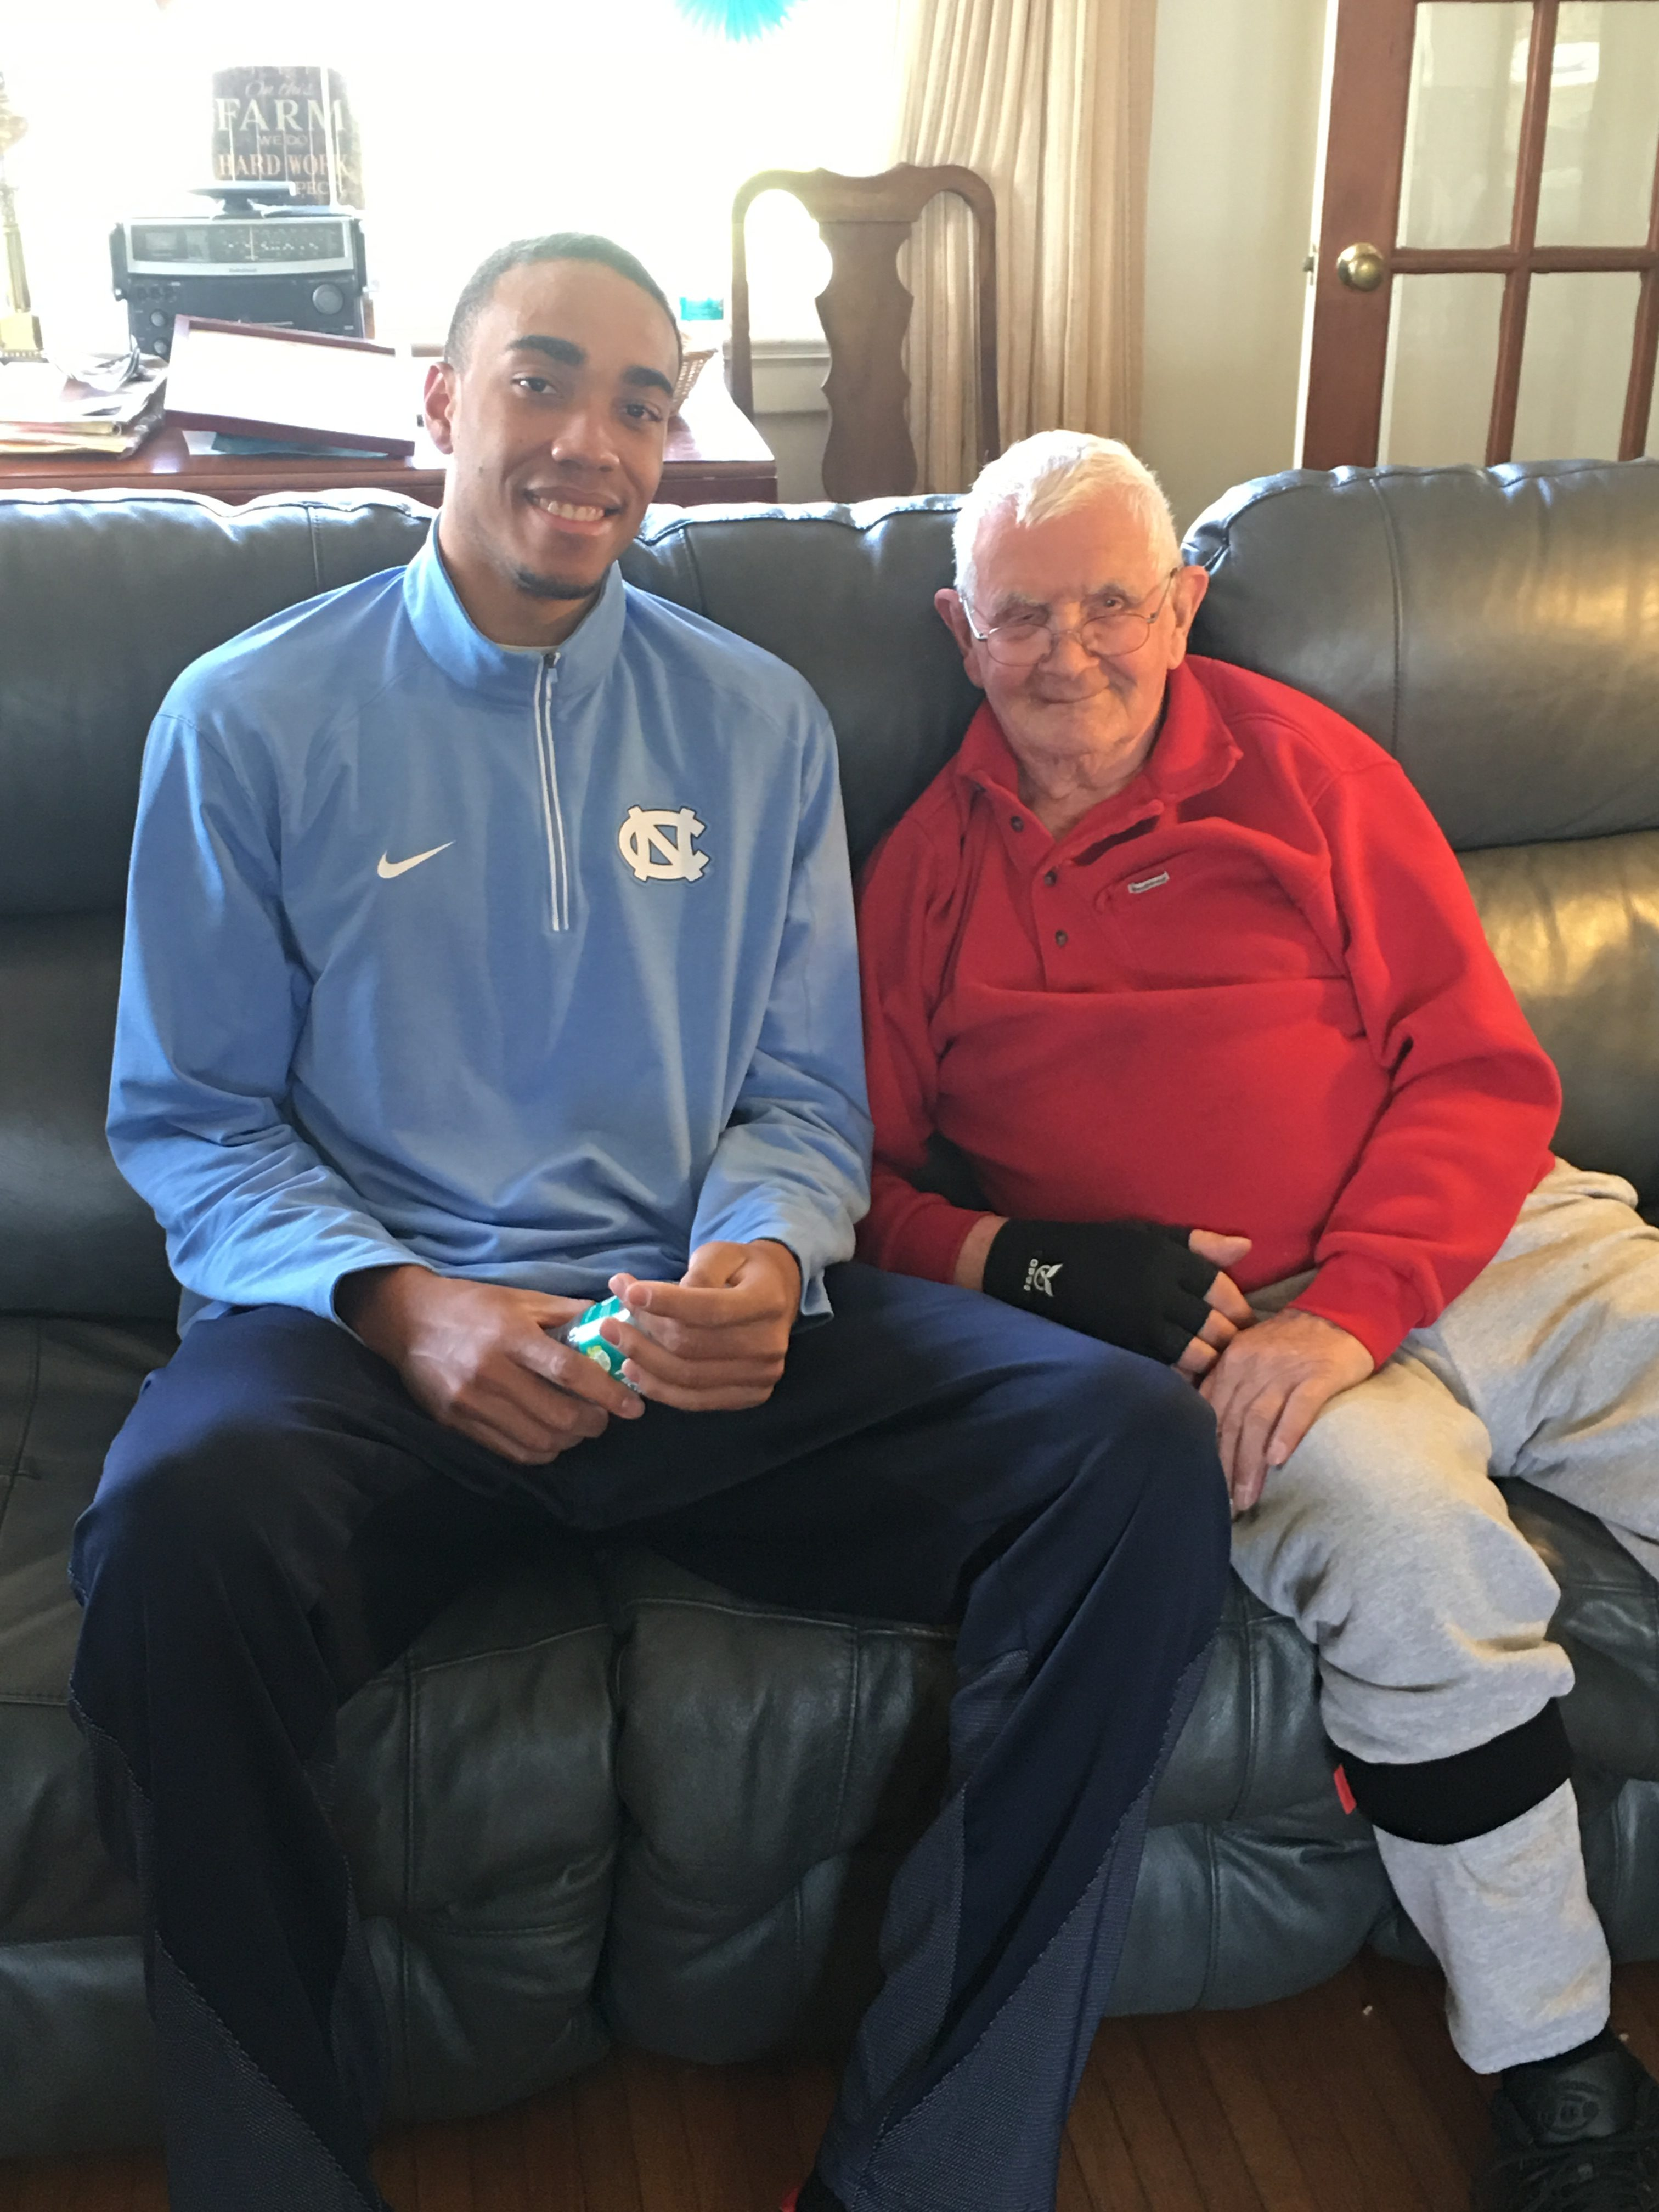 UNC's Brice Johnson visited Maple View Farm in April, where he met with Bob and milked one of the cows.